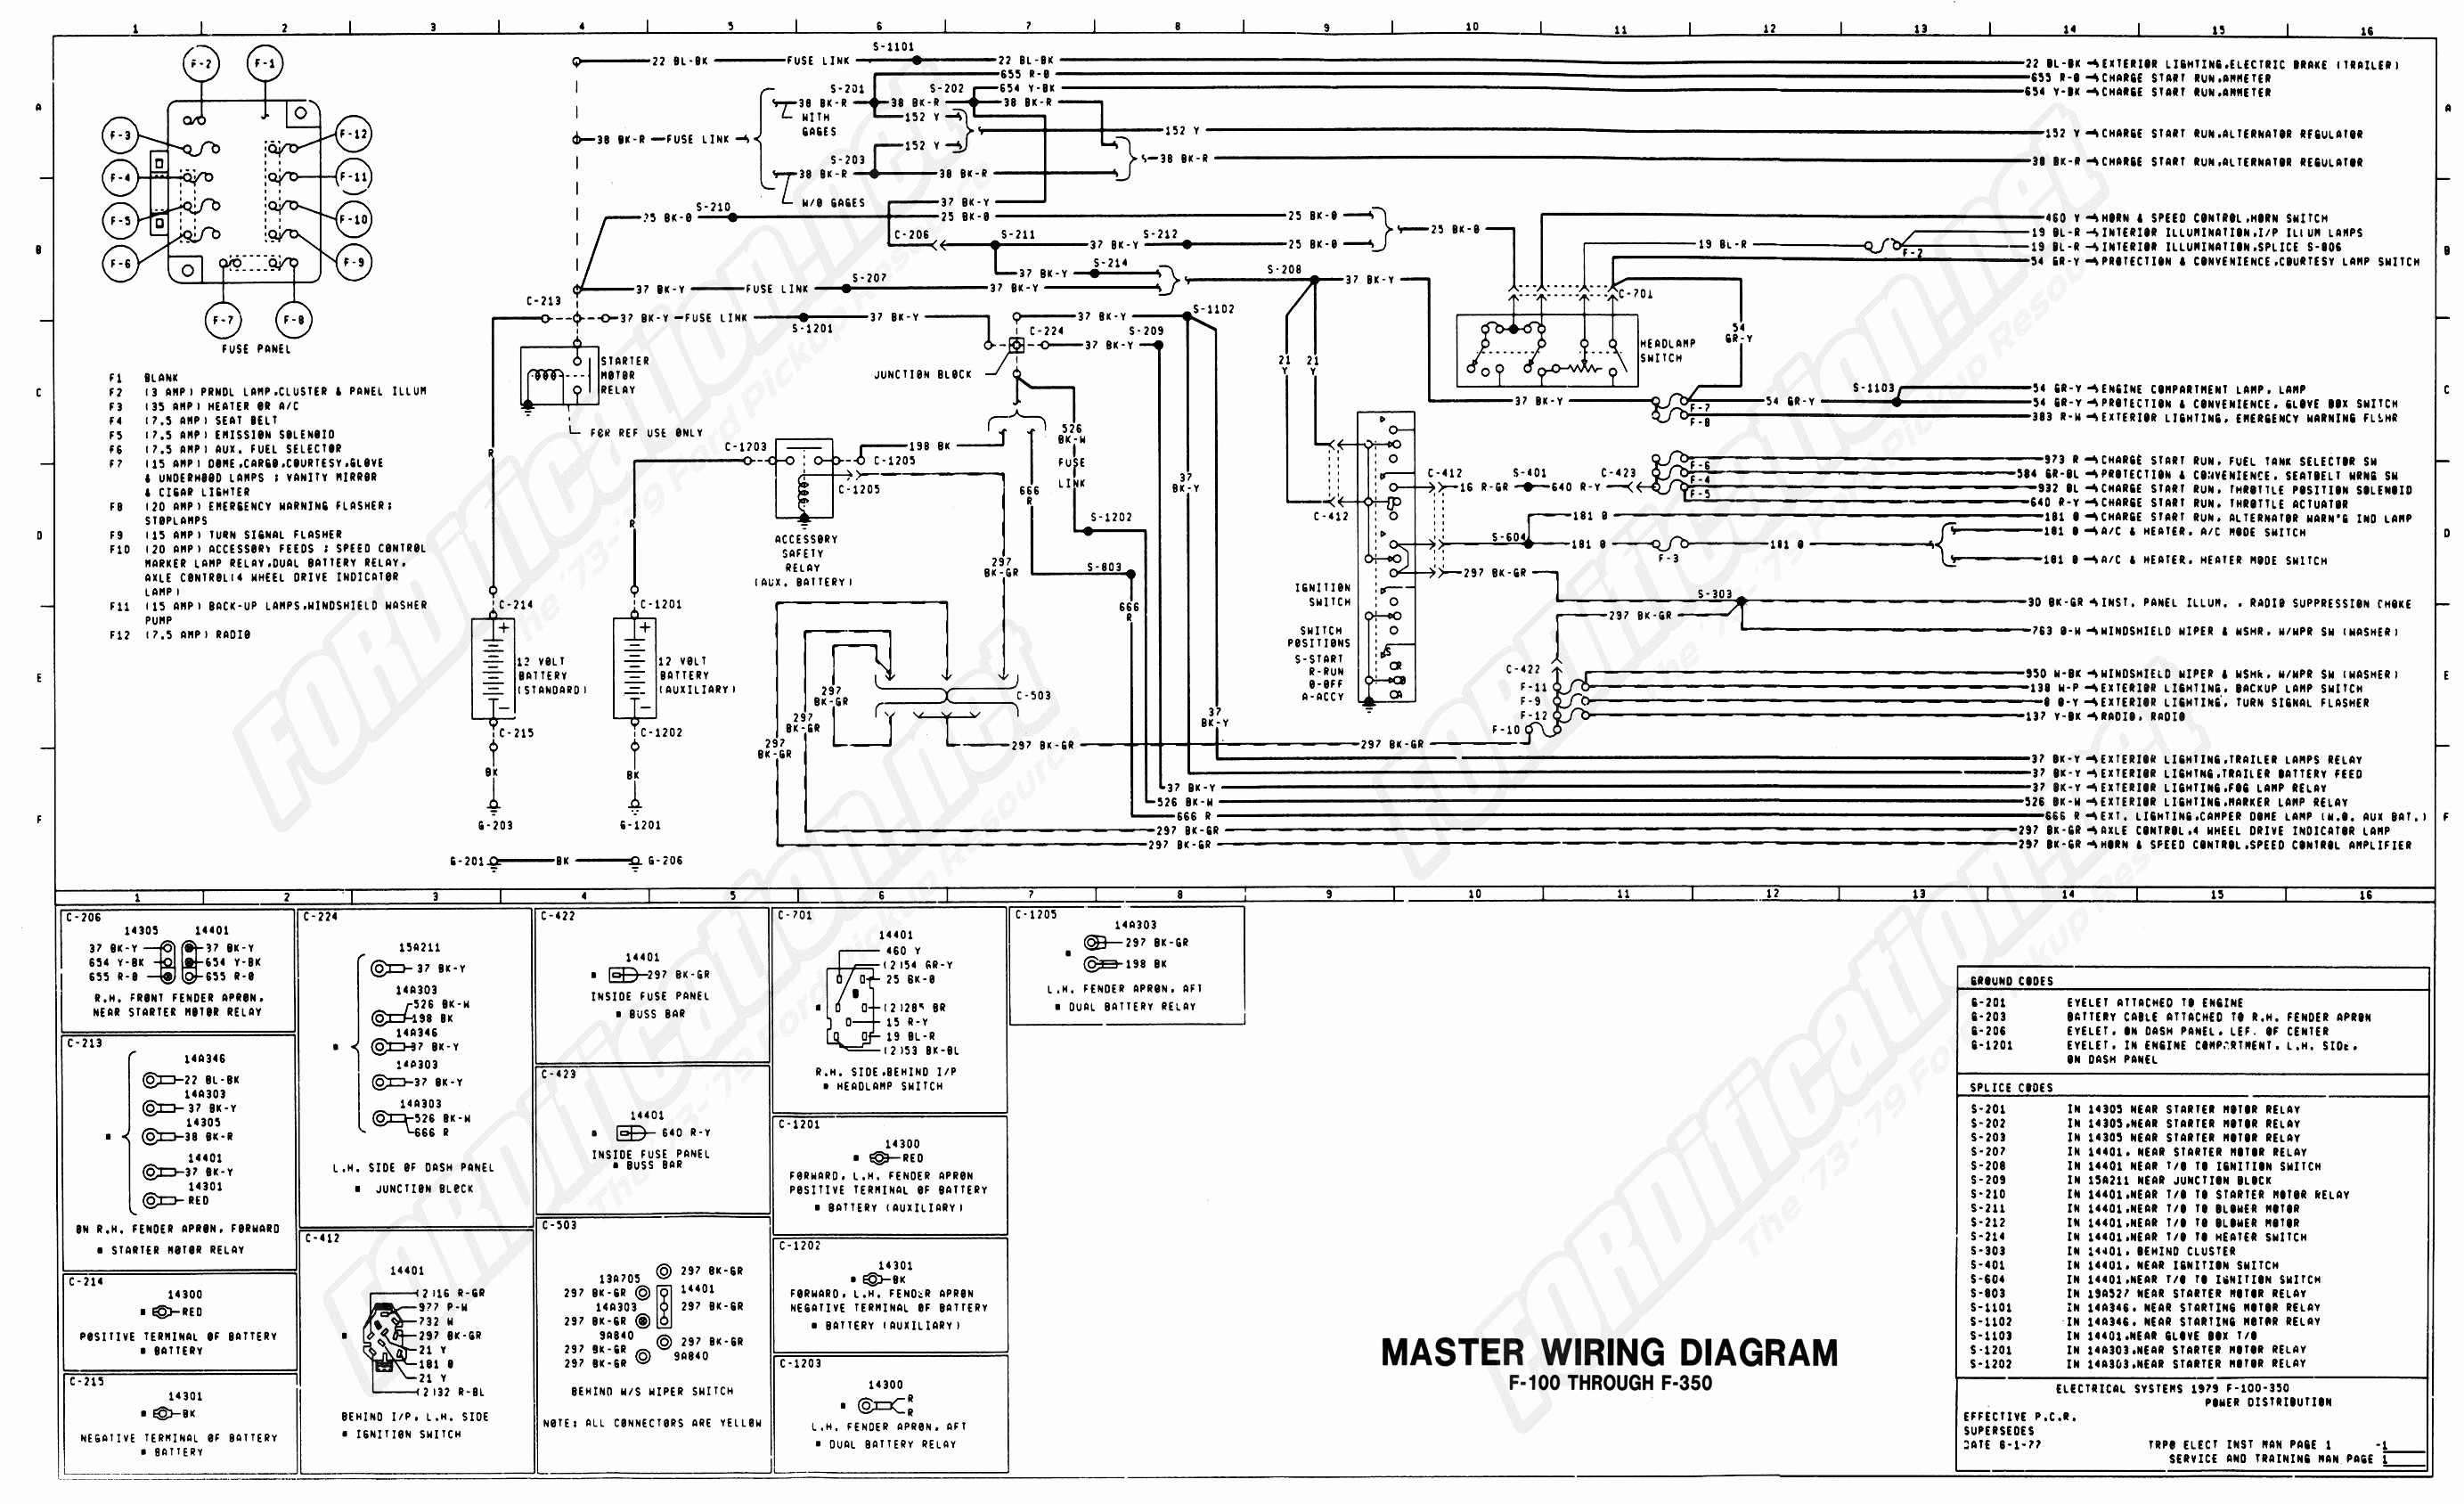 Ford Truck Fuse Box Diagram 2001 ford F150 Fuse Box Diagram 79 F150  solenoid Wiring Diagram